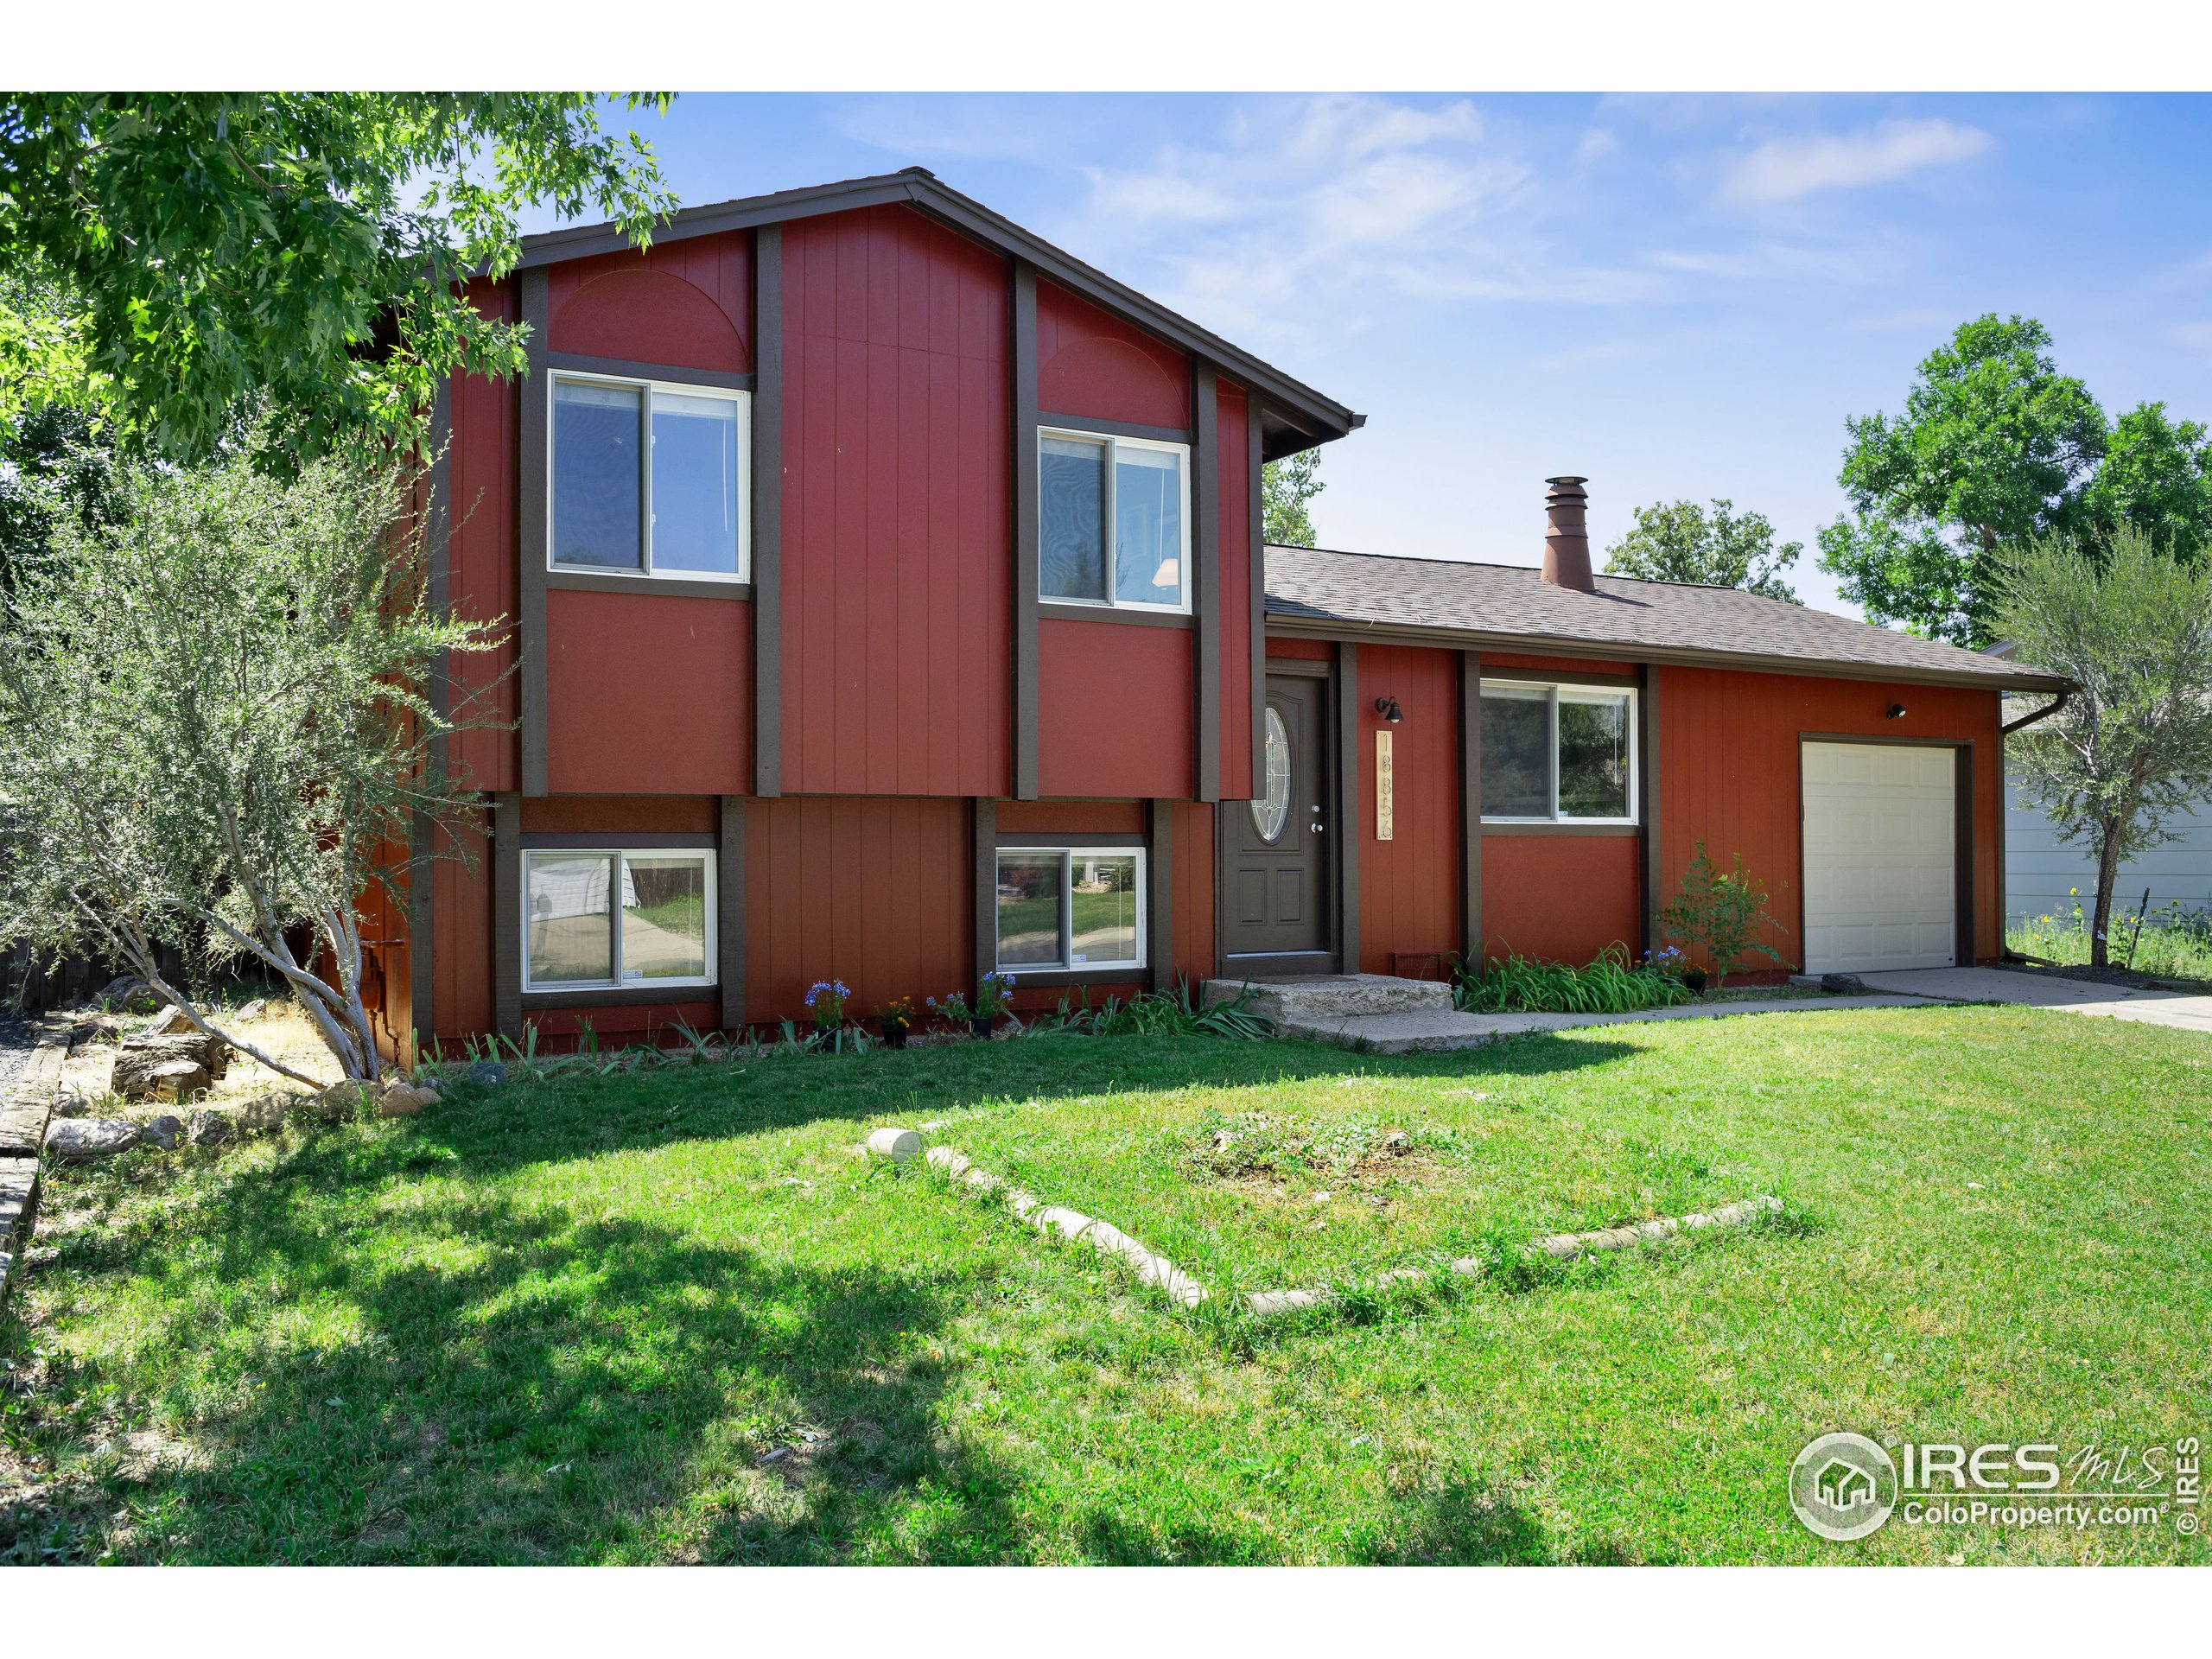 Enjoy the views and trails of North Table Mountain from your backyard! Apple Meadows is about a 20 minute drive to South Boulder, 10 minutes to downtown Golden, and 25 minutes to Denver with easy access to the mountains. Lots of updates to appreciate in this beautiful home including  the water heater, furnace, and washer / dryer, all new as of 2019. Freshly painted exterior and all new gutters. Huge backyard for all your outdoor needs! The shed includes a recreational climbing wall.